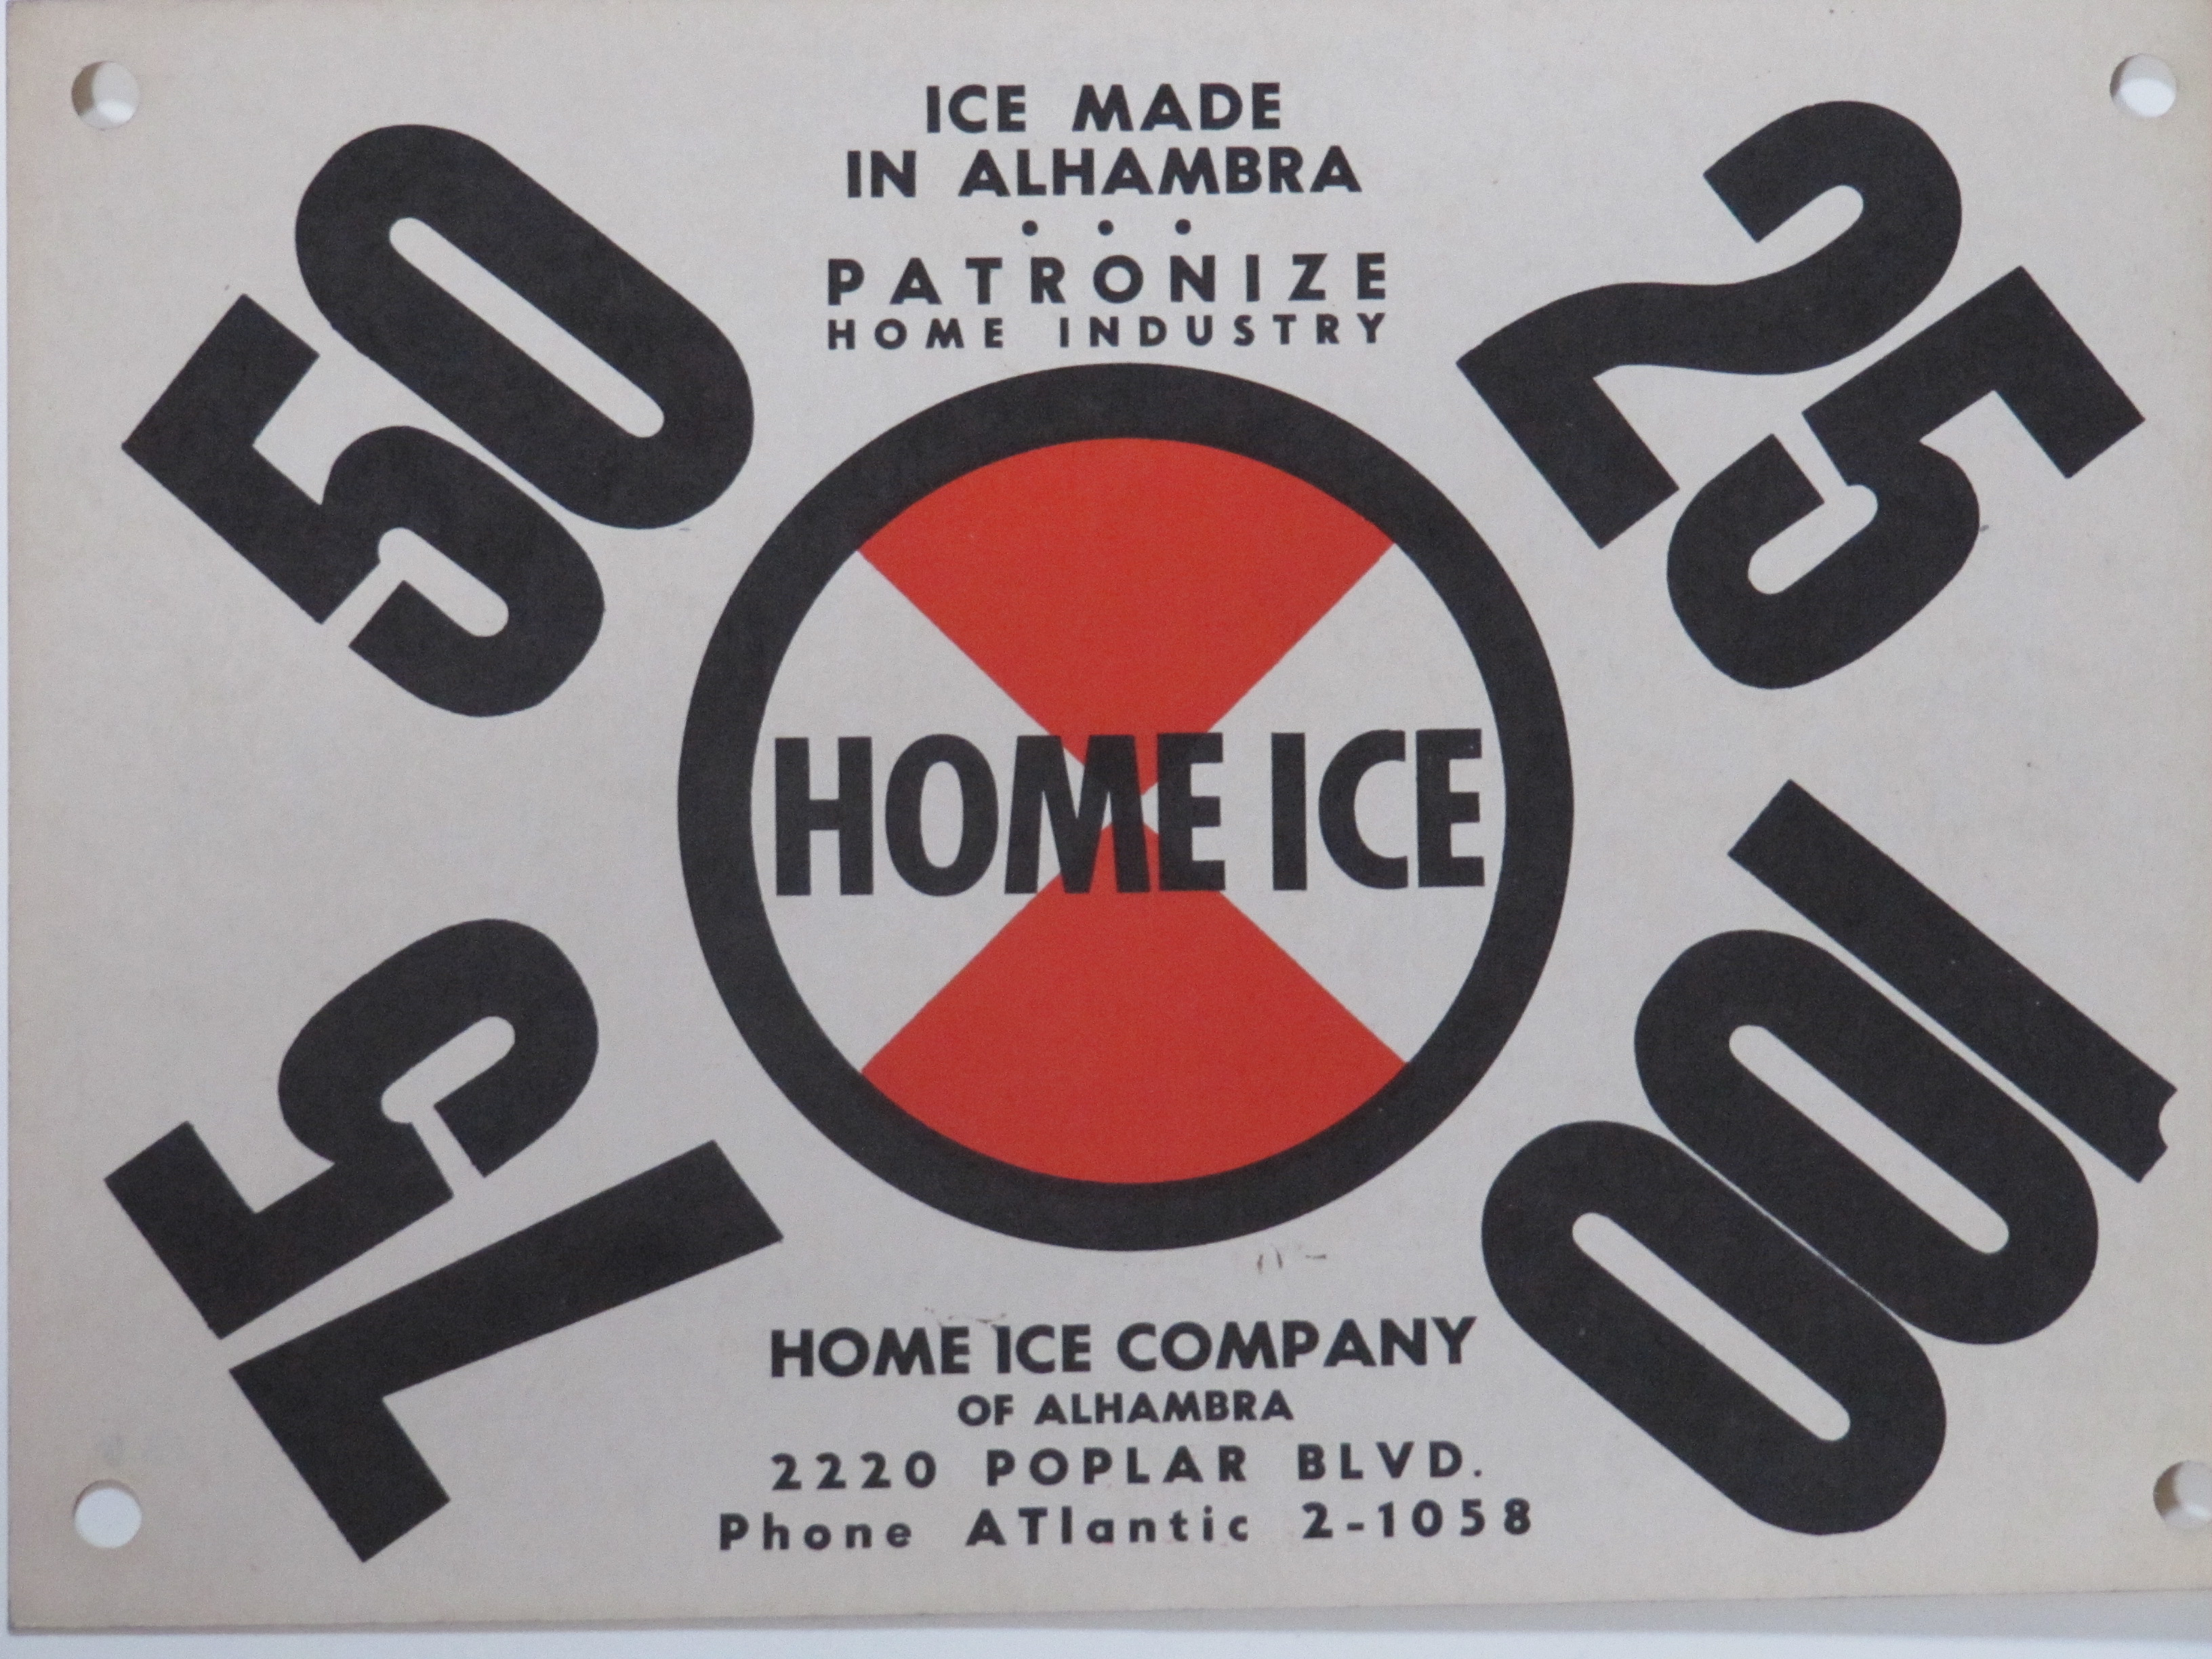 Home Ice of Alhambra